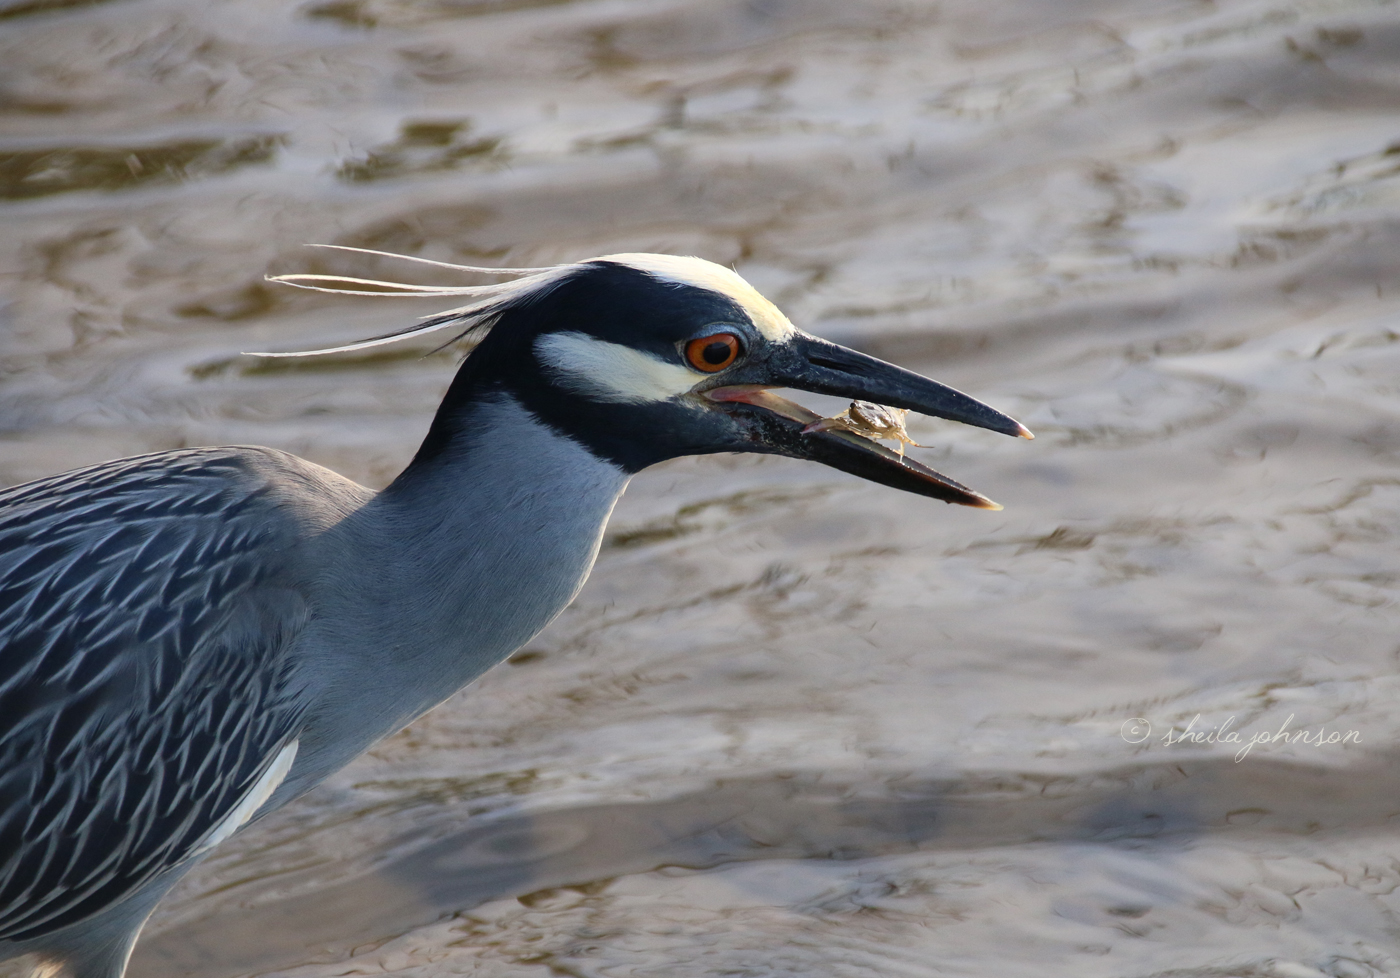 This Gorgeous Crested Night Heron Enjoys The Freshest Crab For Lunch!